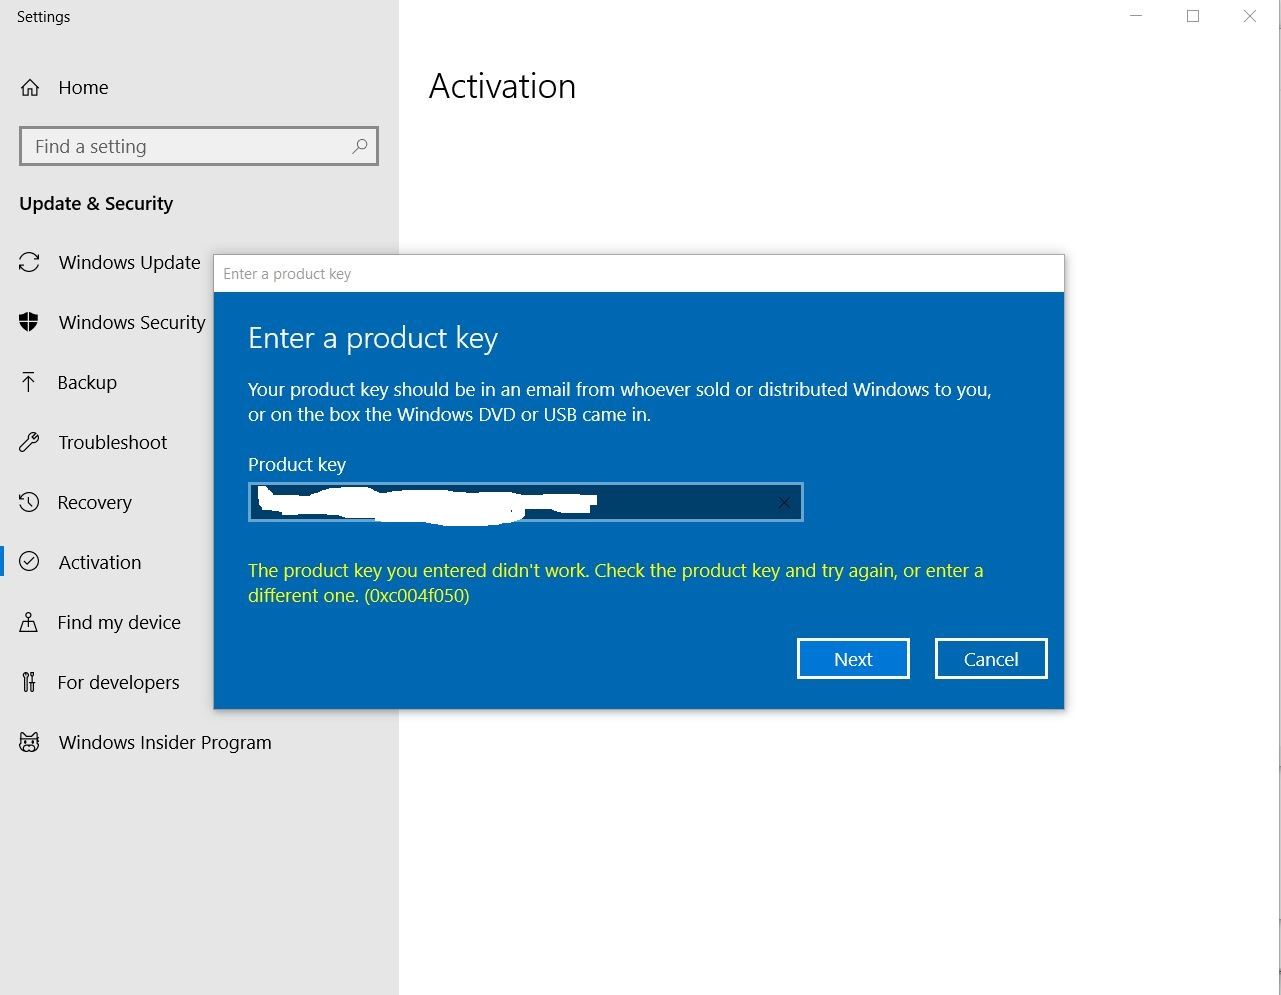 win 10 home activation gone after 1803 update